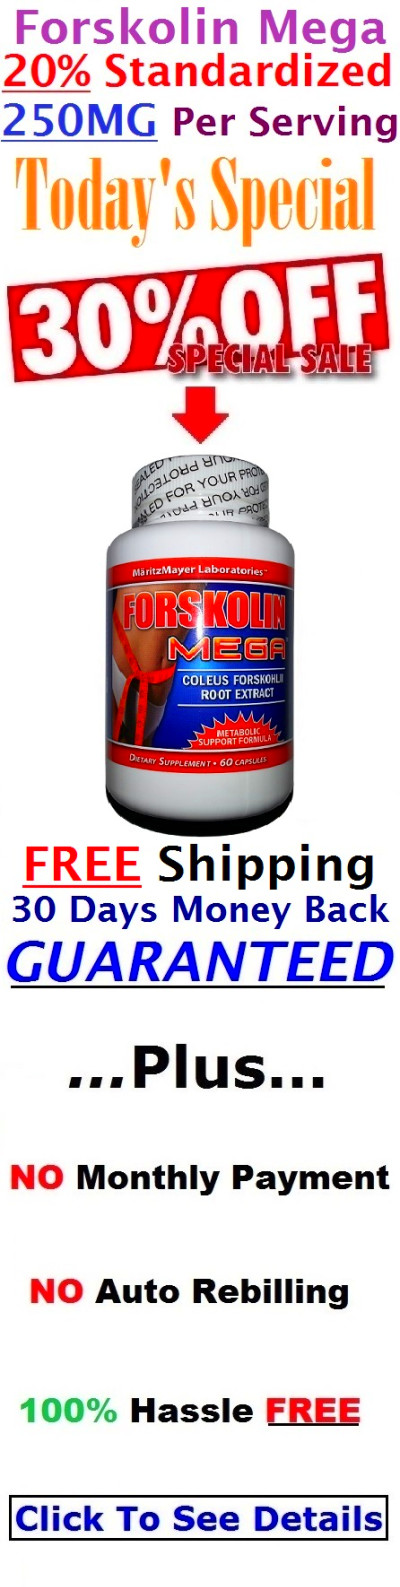 Forskolin Mega: Strongest Forskolin Dosage Available